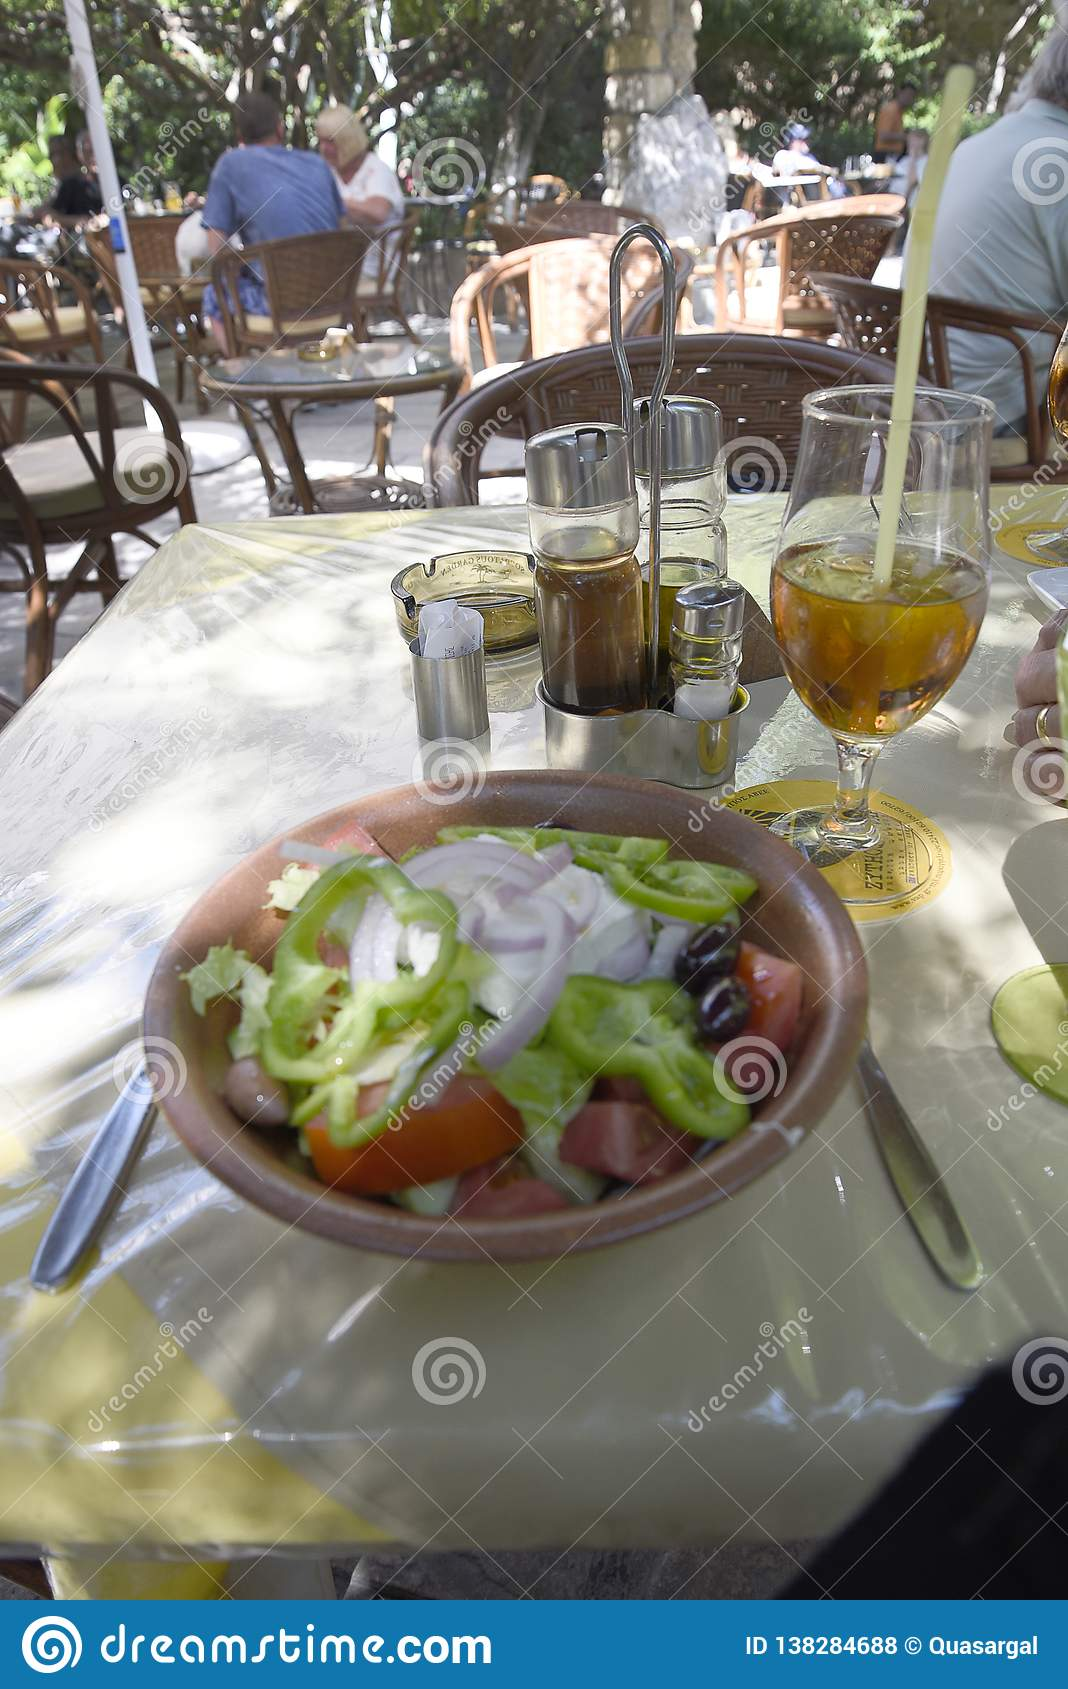 Delicious Greek salad with Feta Cheese for Lunch In the Old Walled Town of Rhodes in Greece